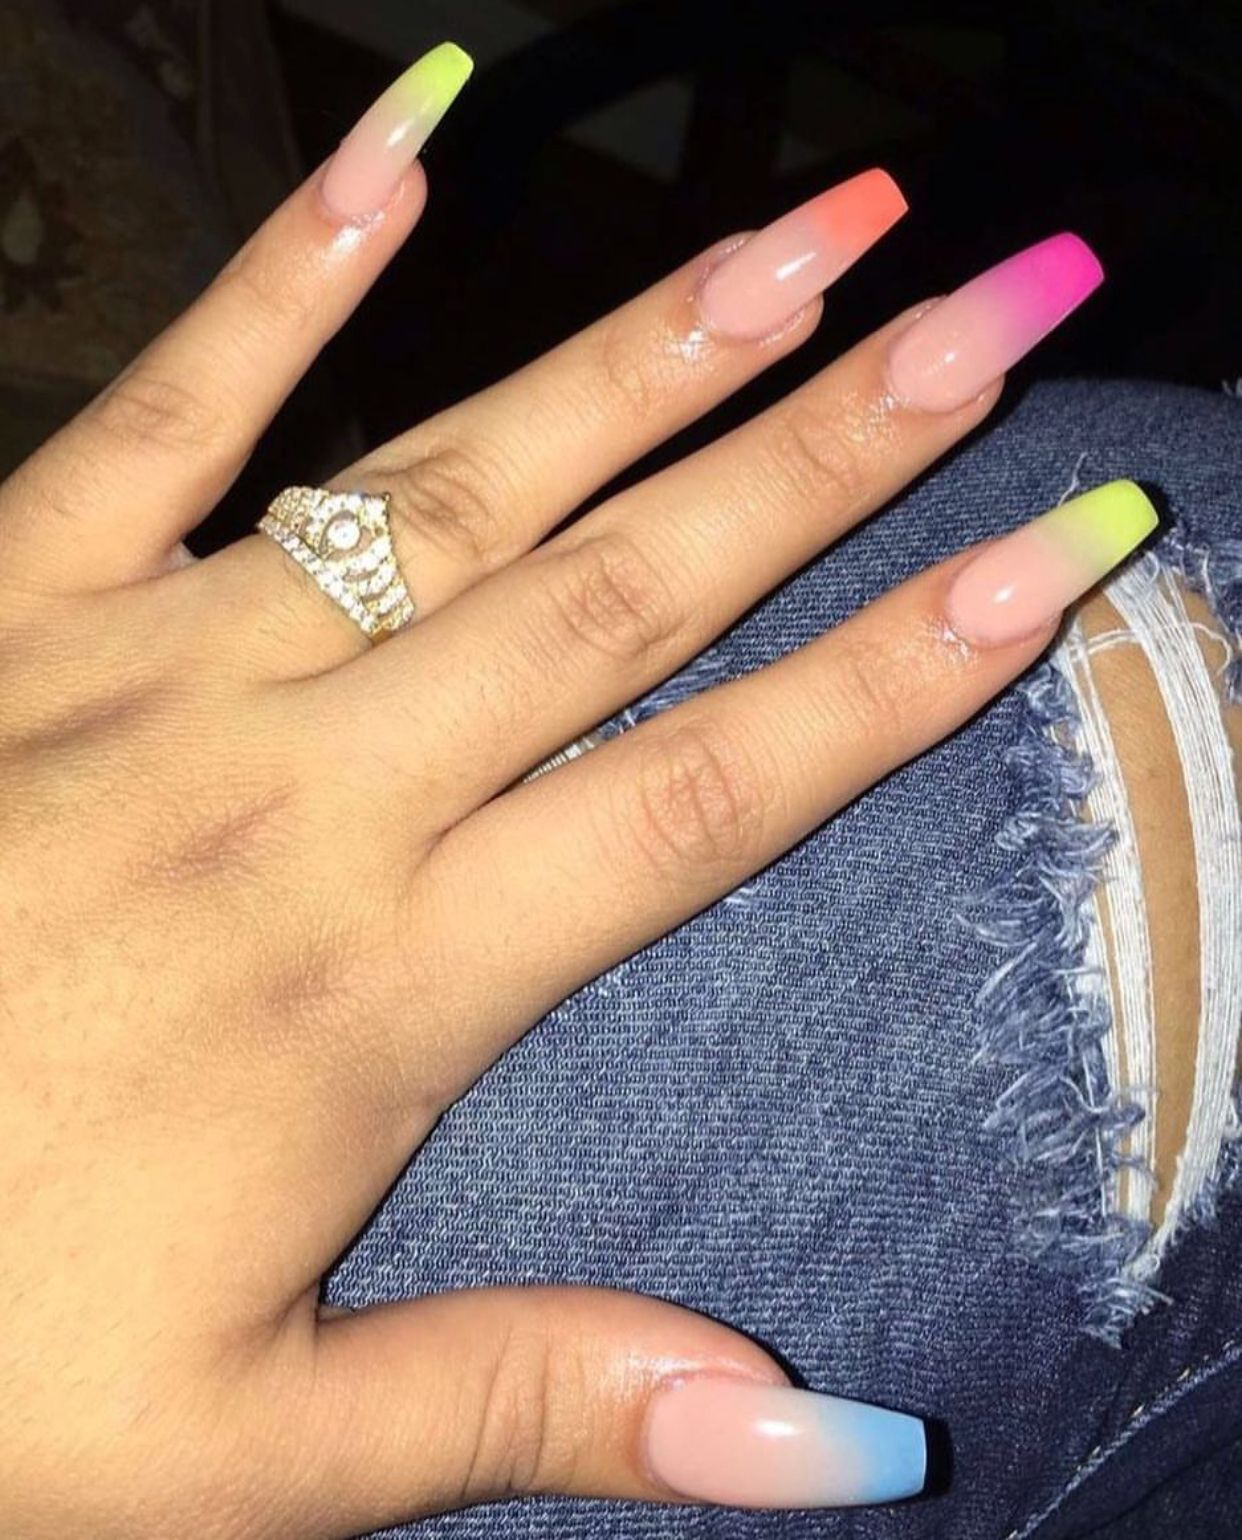 Pin By Luz Info On Nails Cute Acrylic Nails Ombre Acrylic Nails Nails